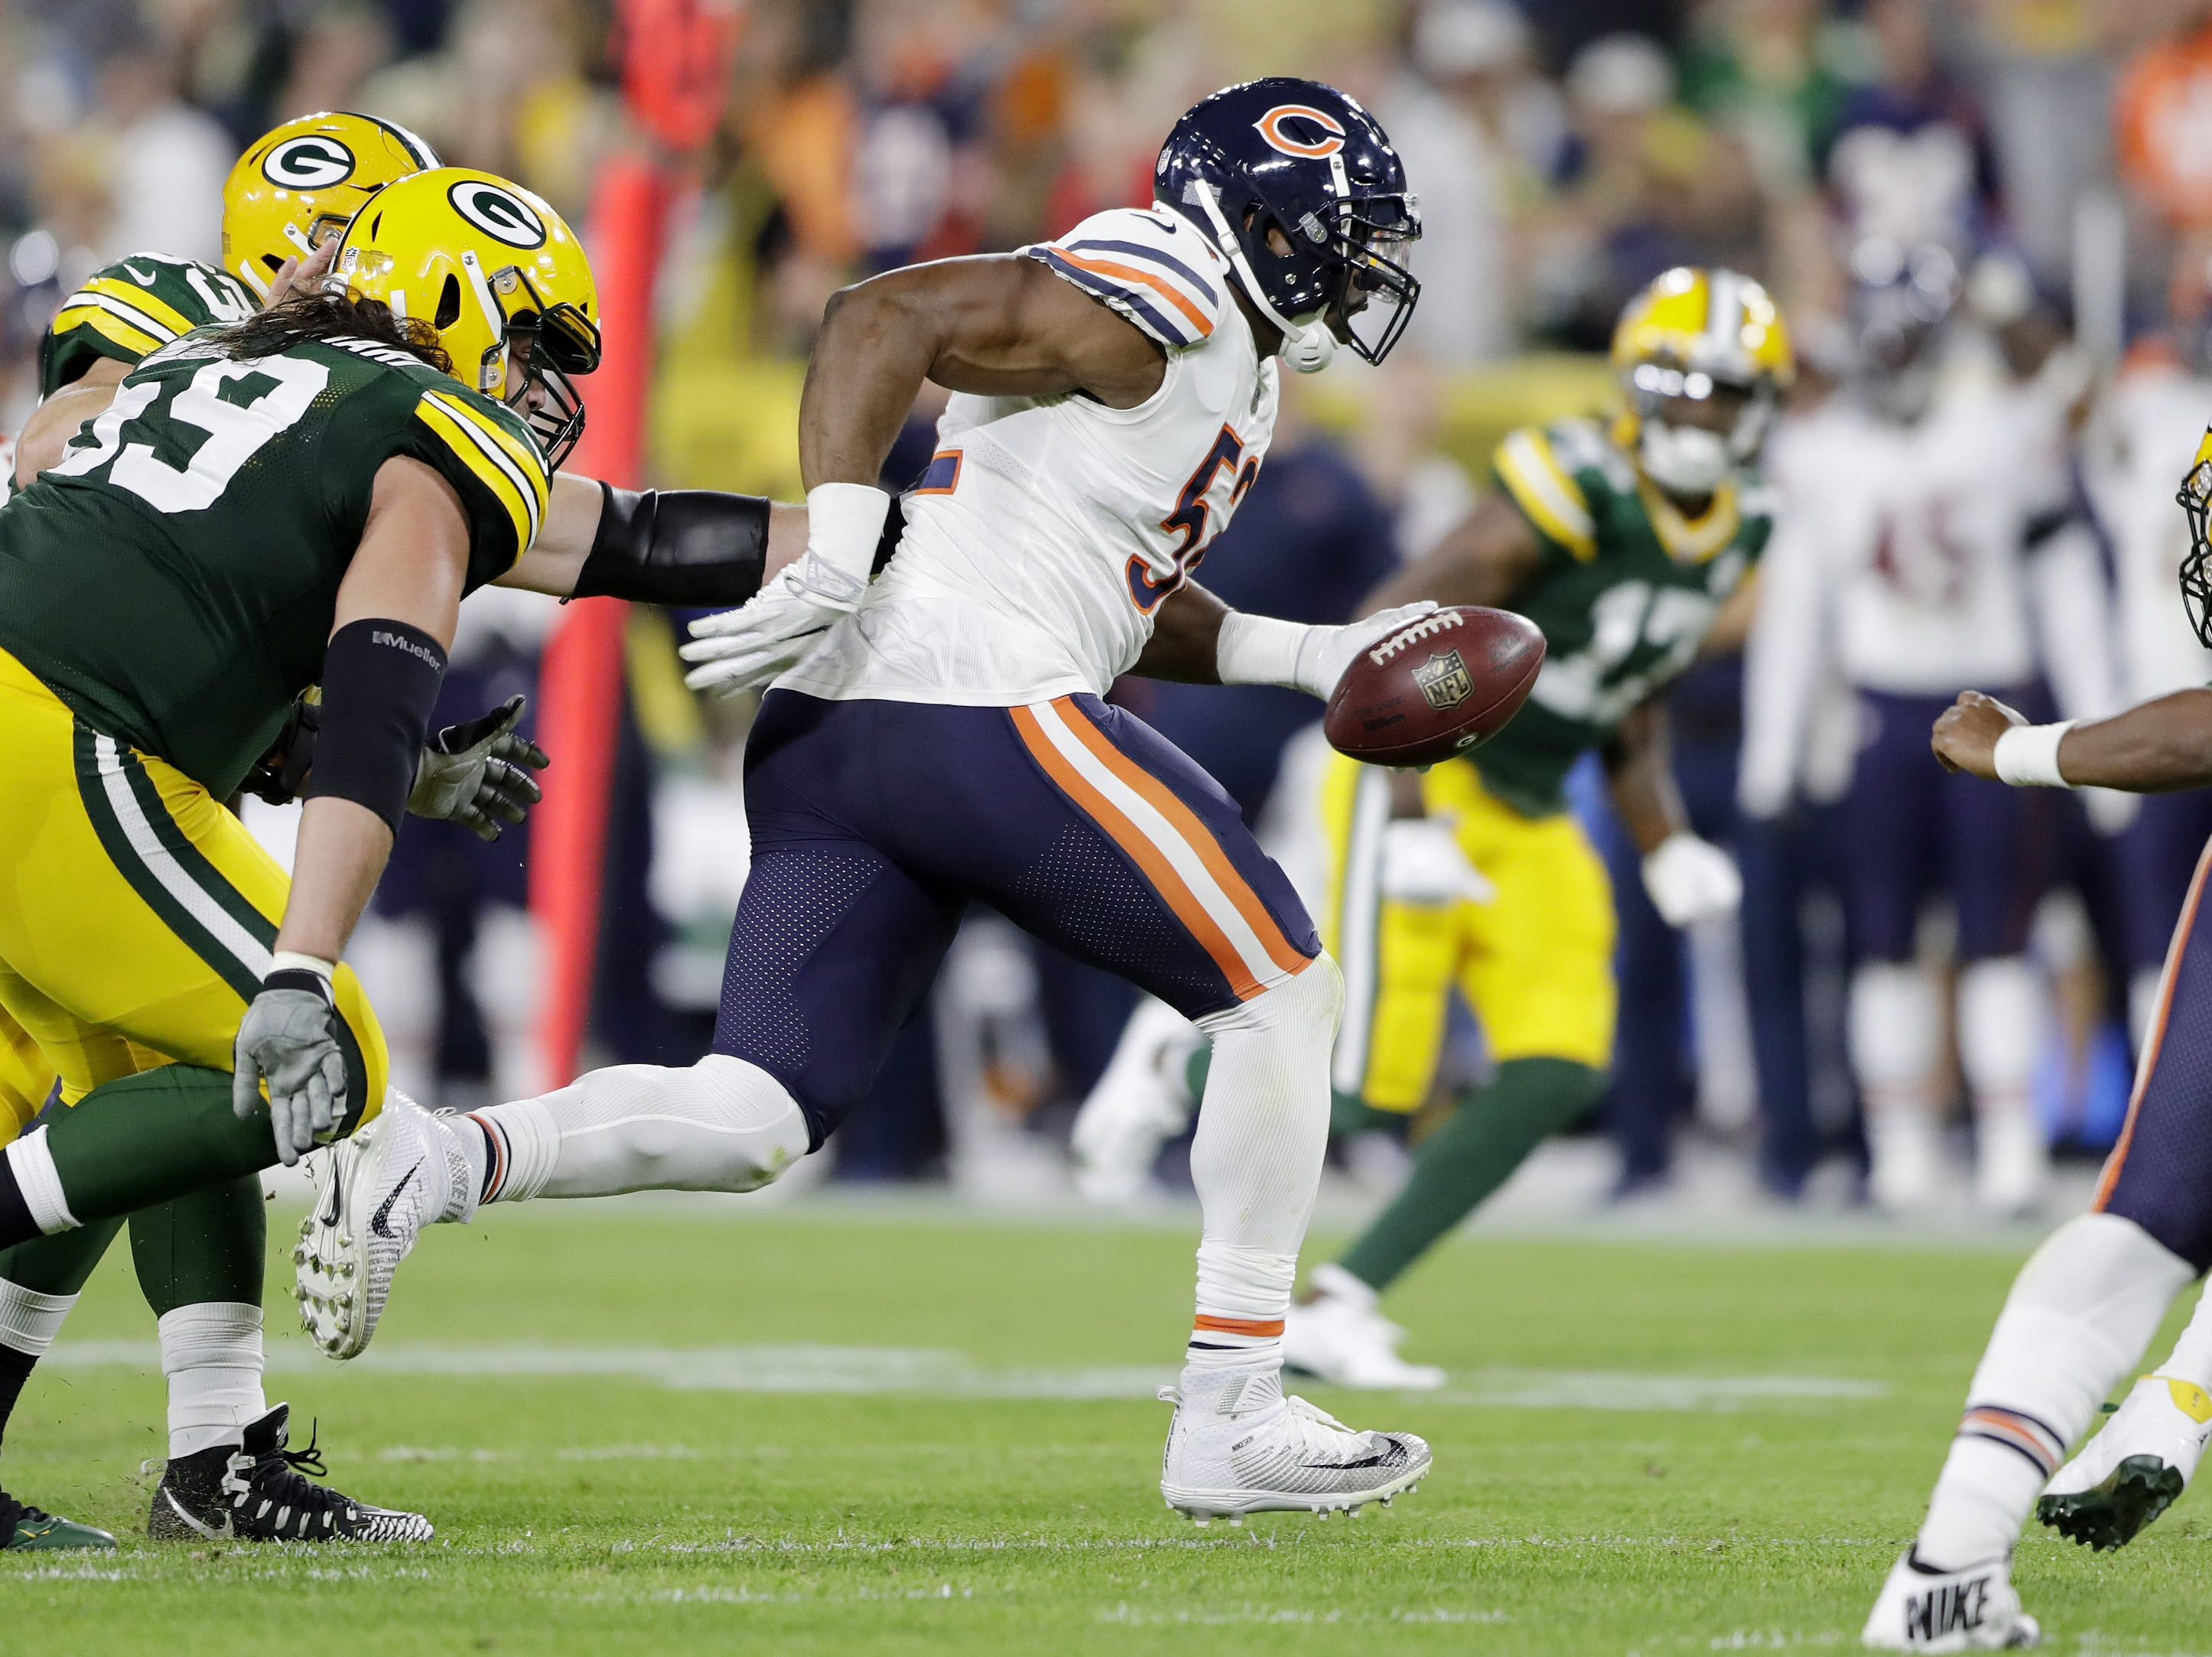 Chicago Bears linebacker Khalil Mack (52) scores a touchdown against the Green Bay Packers in the second quarter at Lambeau Field on Sunday, September 9, 2018 in Green Bay, Wis.